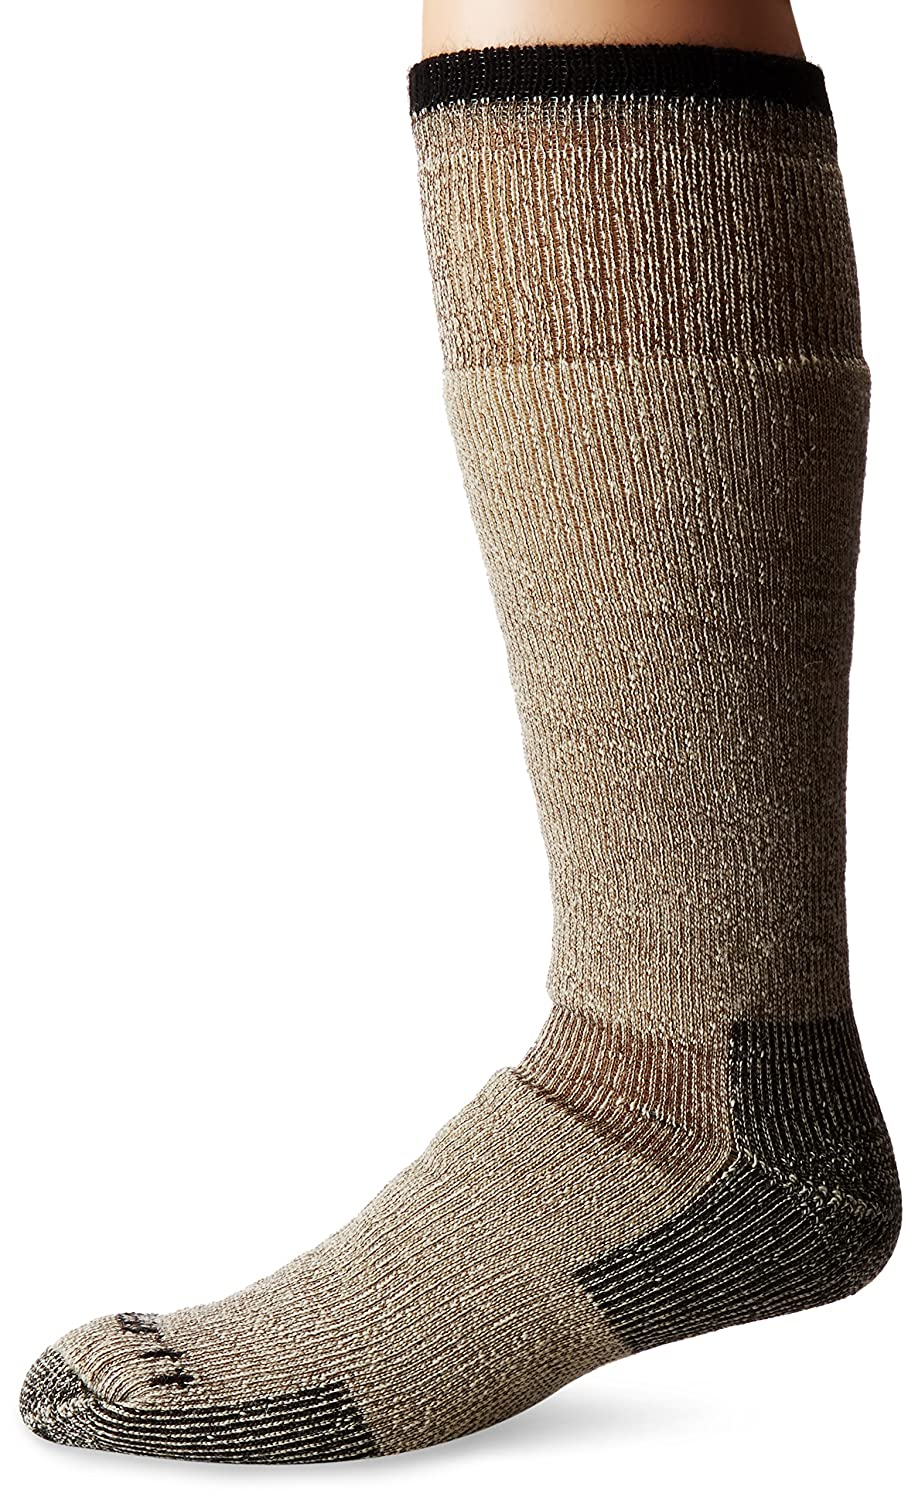 Carhartt Men's Comfort Stretch Steel Toe Socks Carhartt Men's Socks A3915